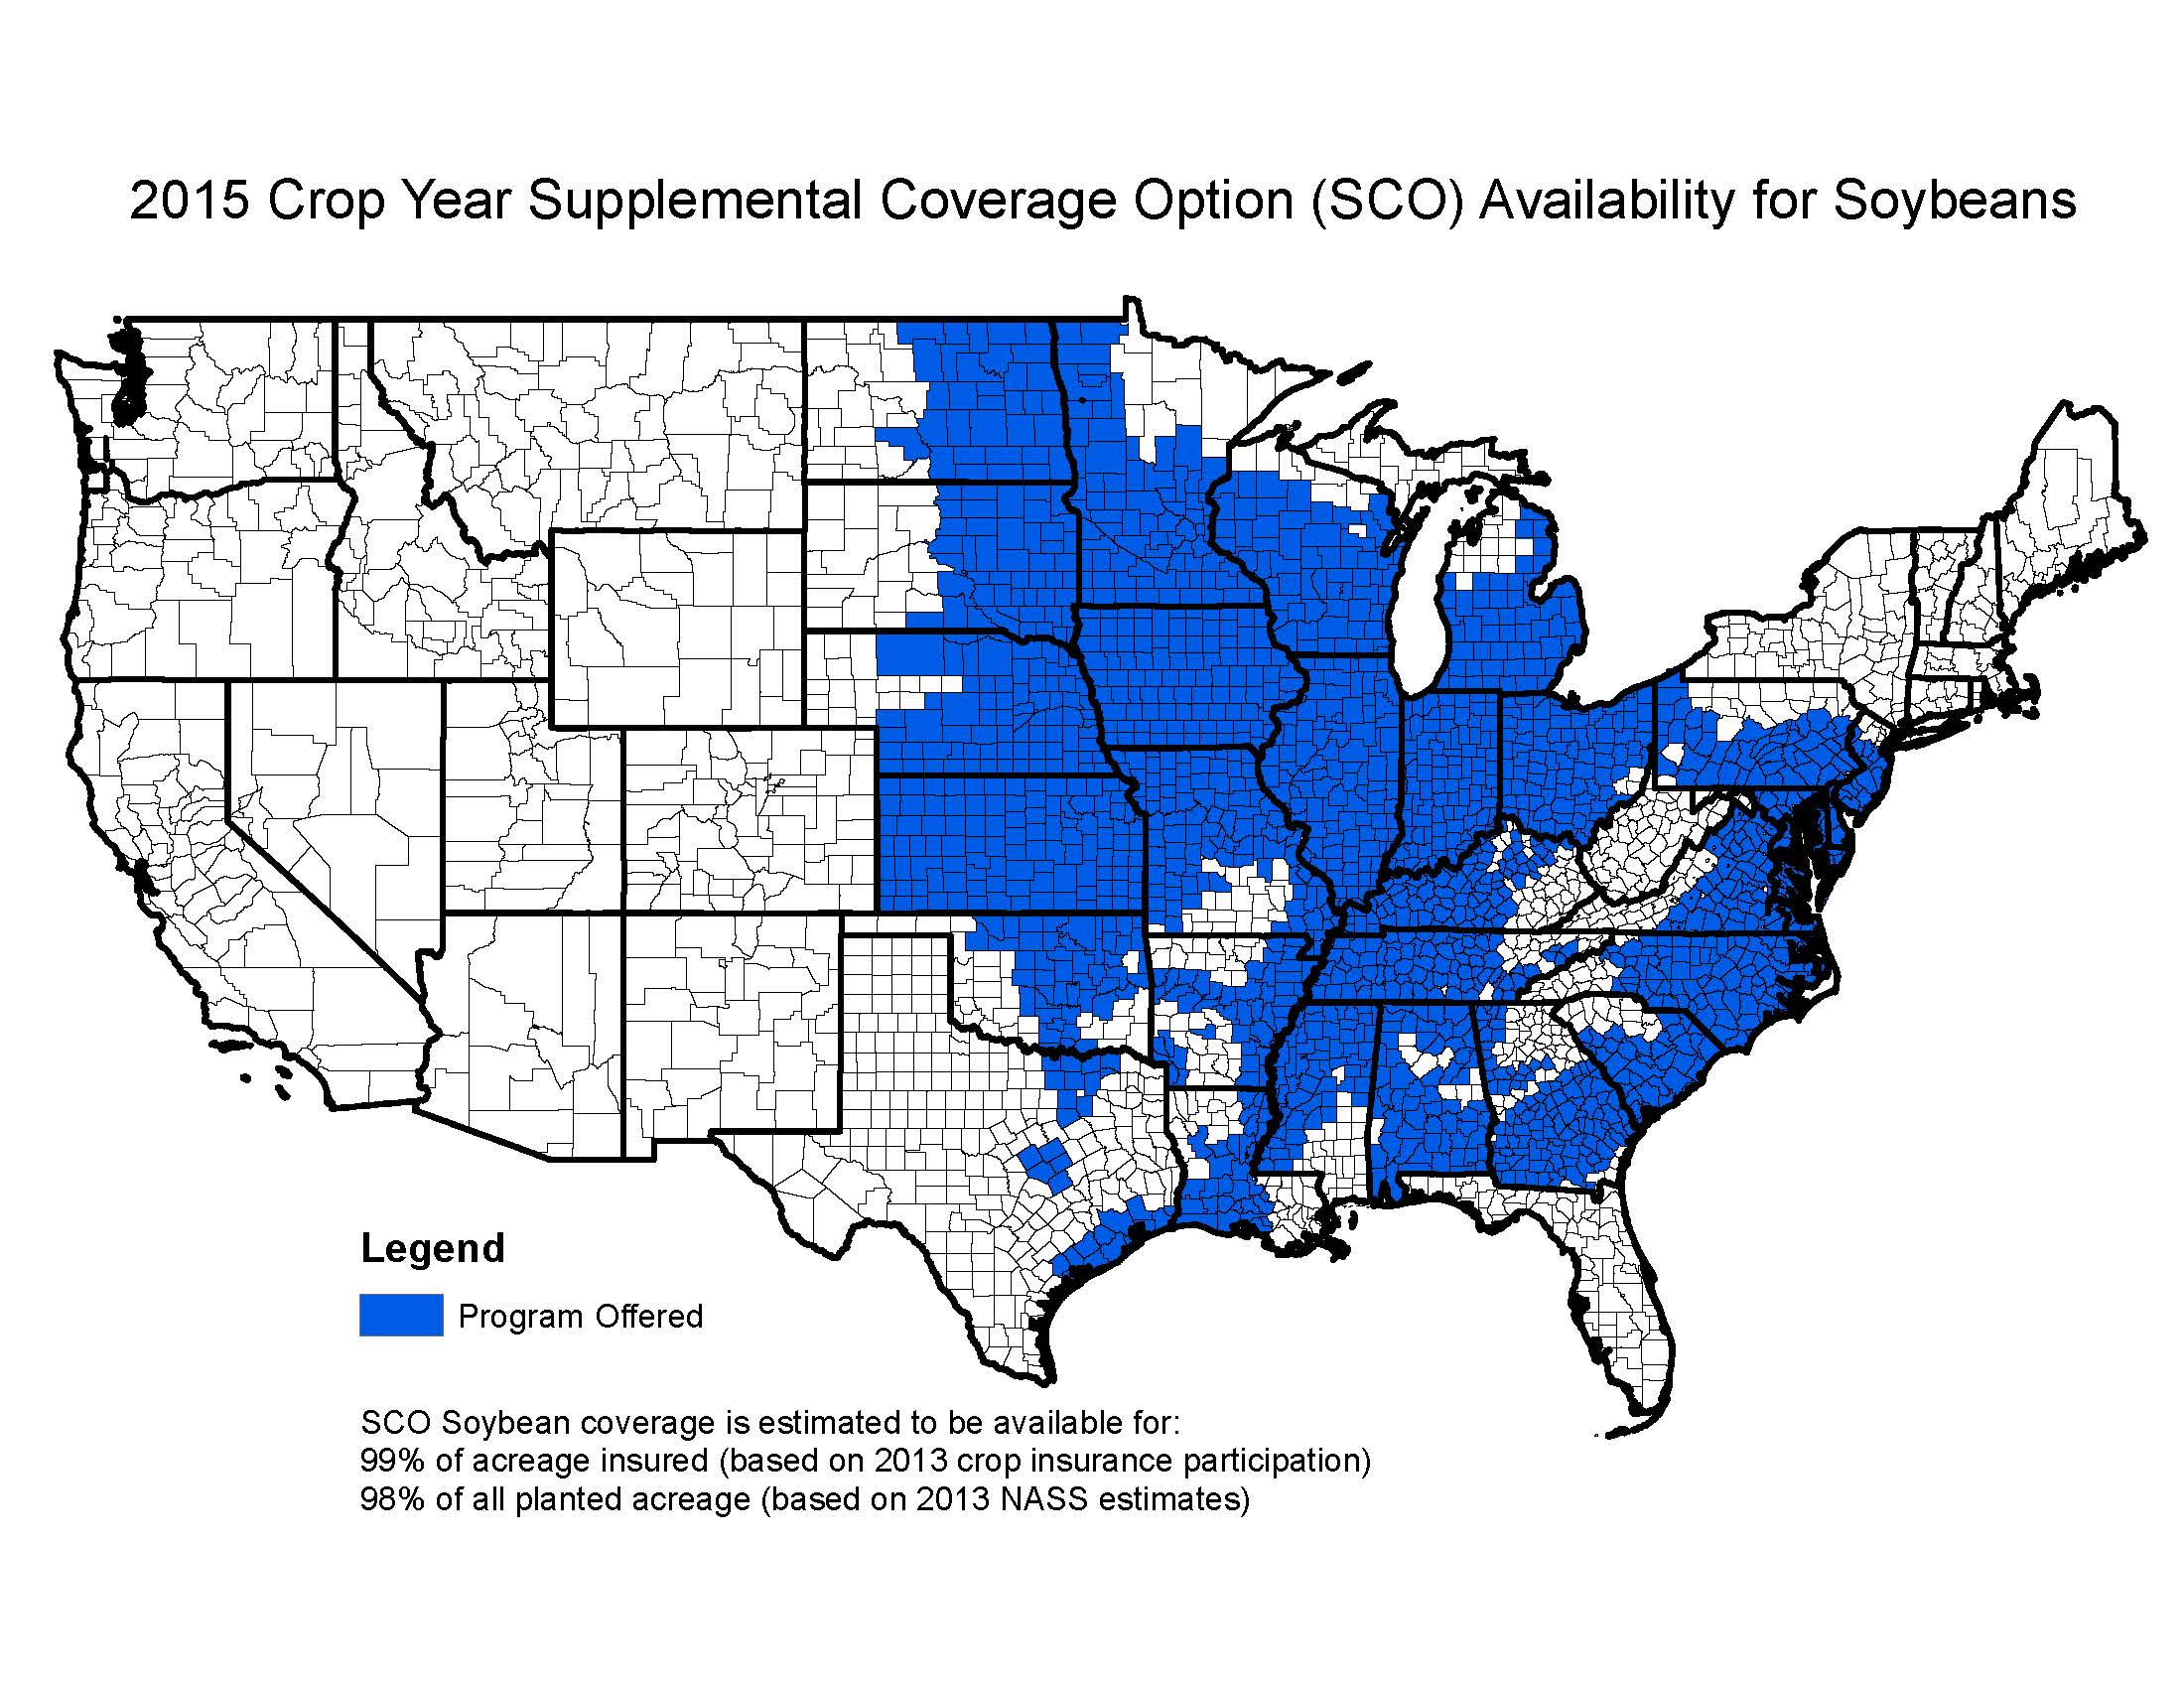 National SCO Coverage Maps for 2015